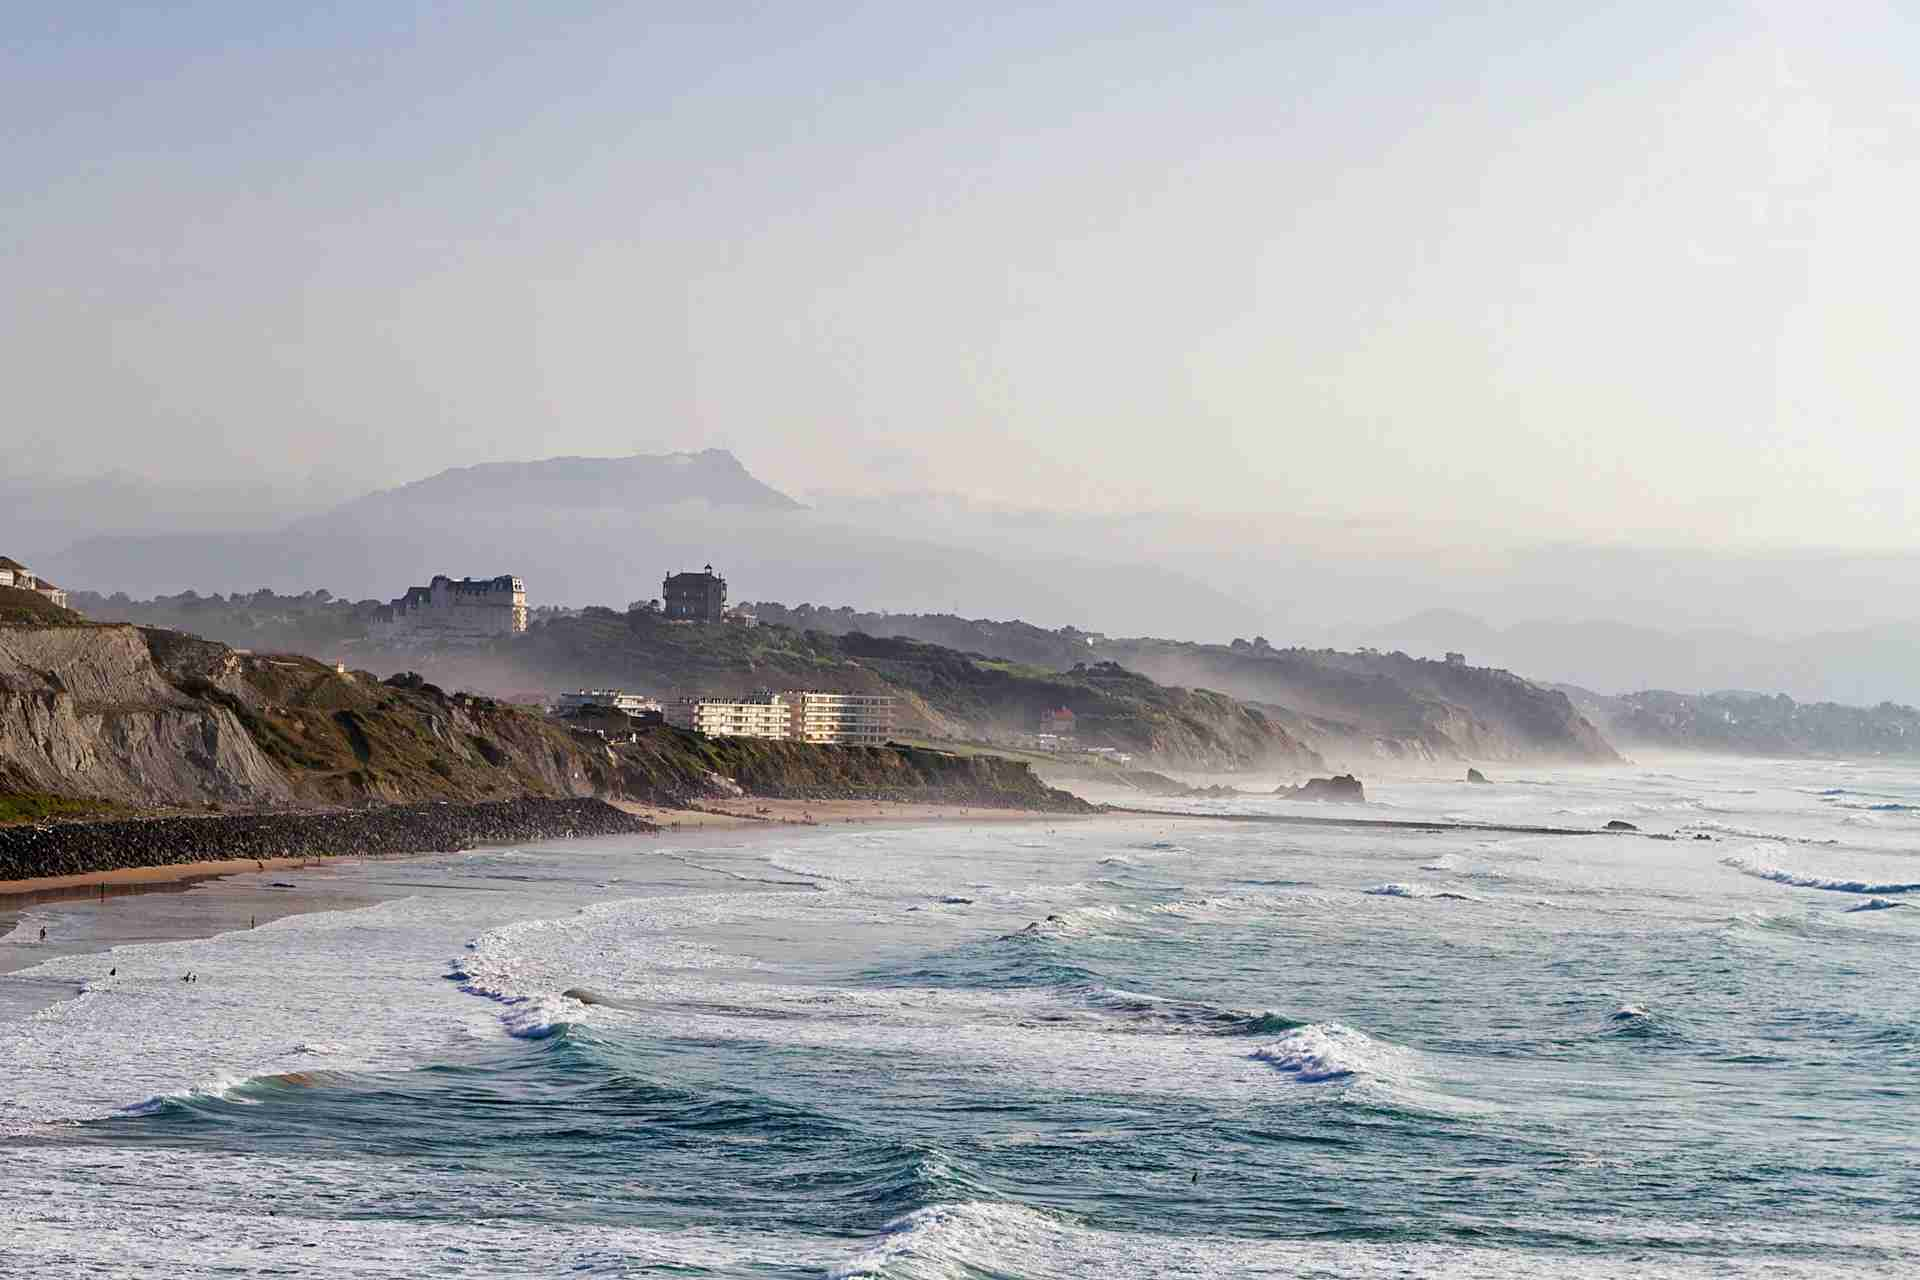 Biarritz in the south of France. (Photo by ondacaracola photography/Getty Images)